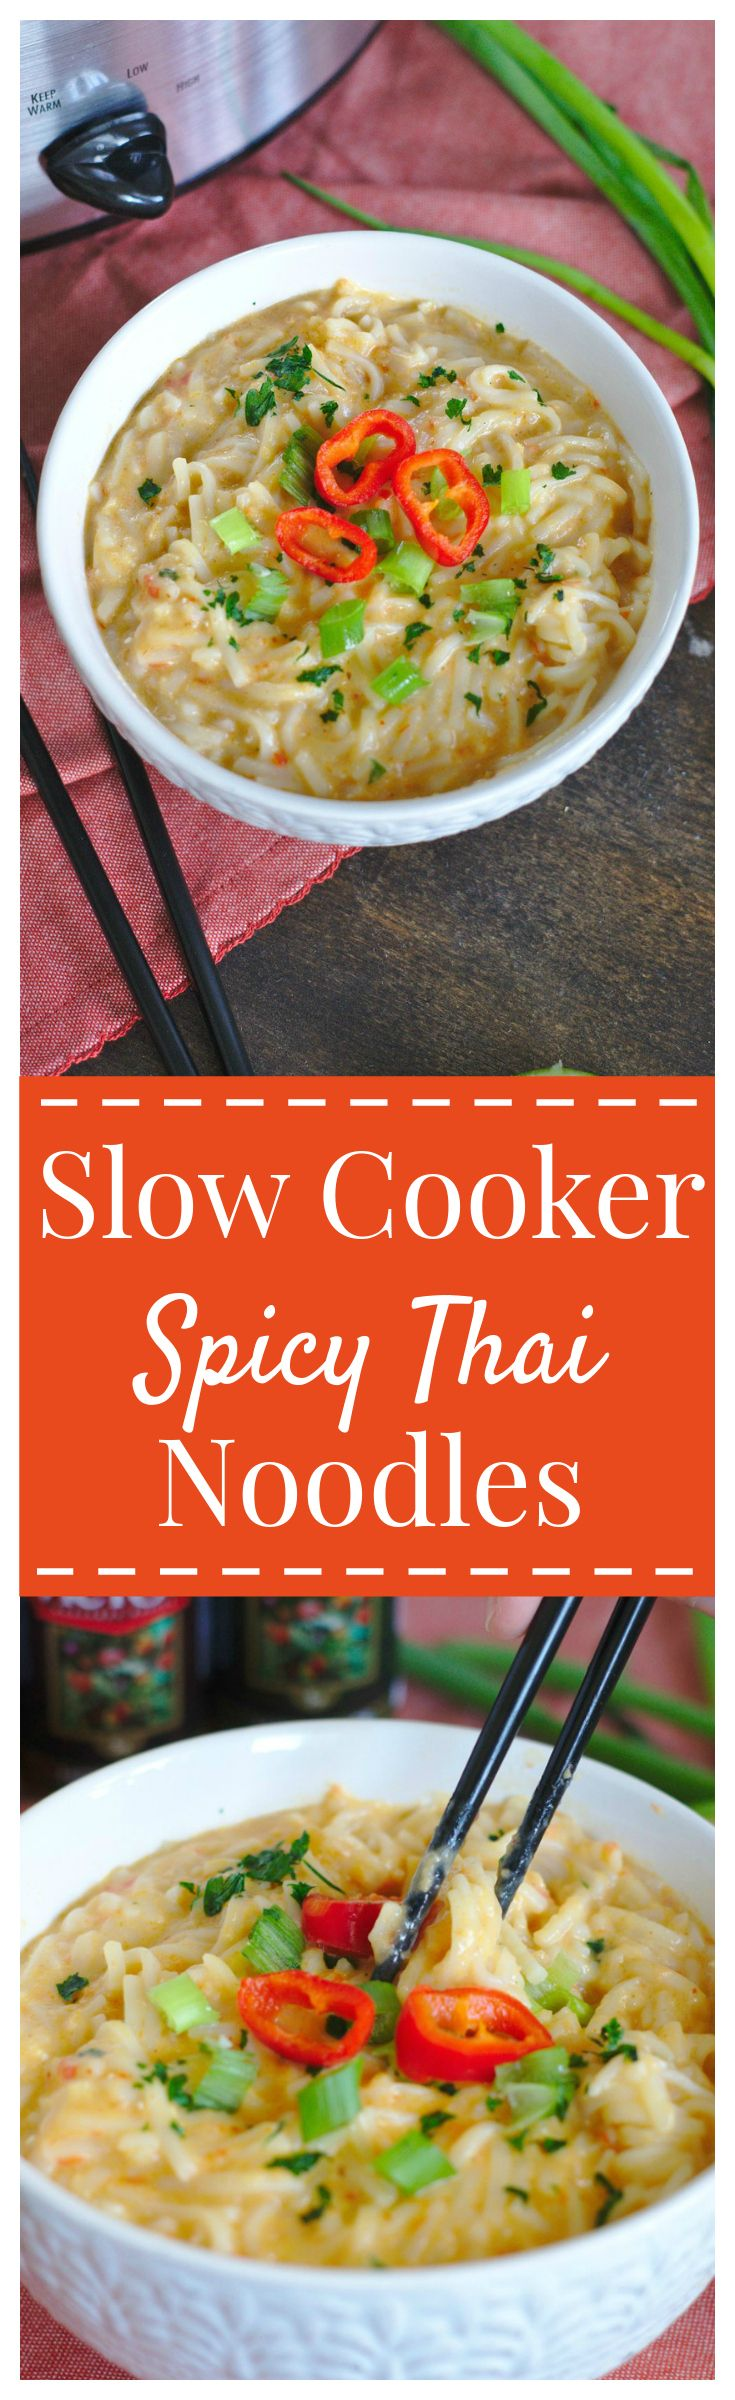 Slow Cooker Spicy Thai Noodles